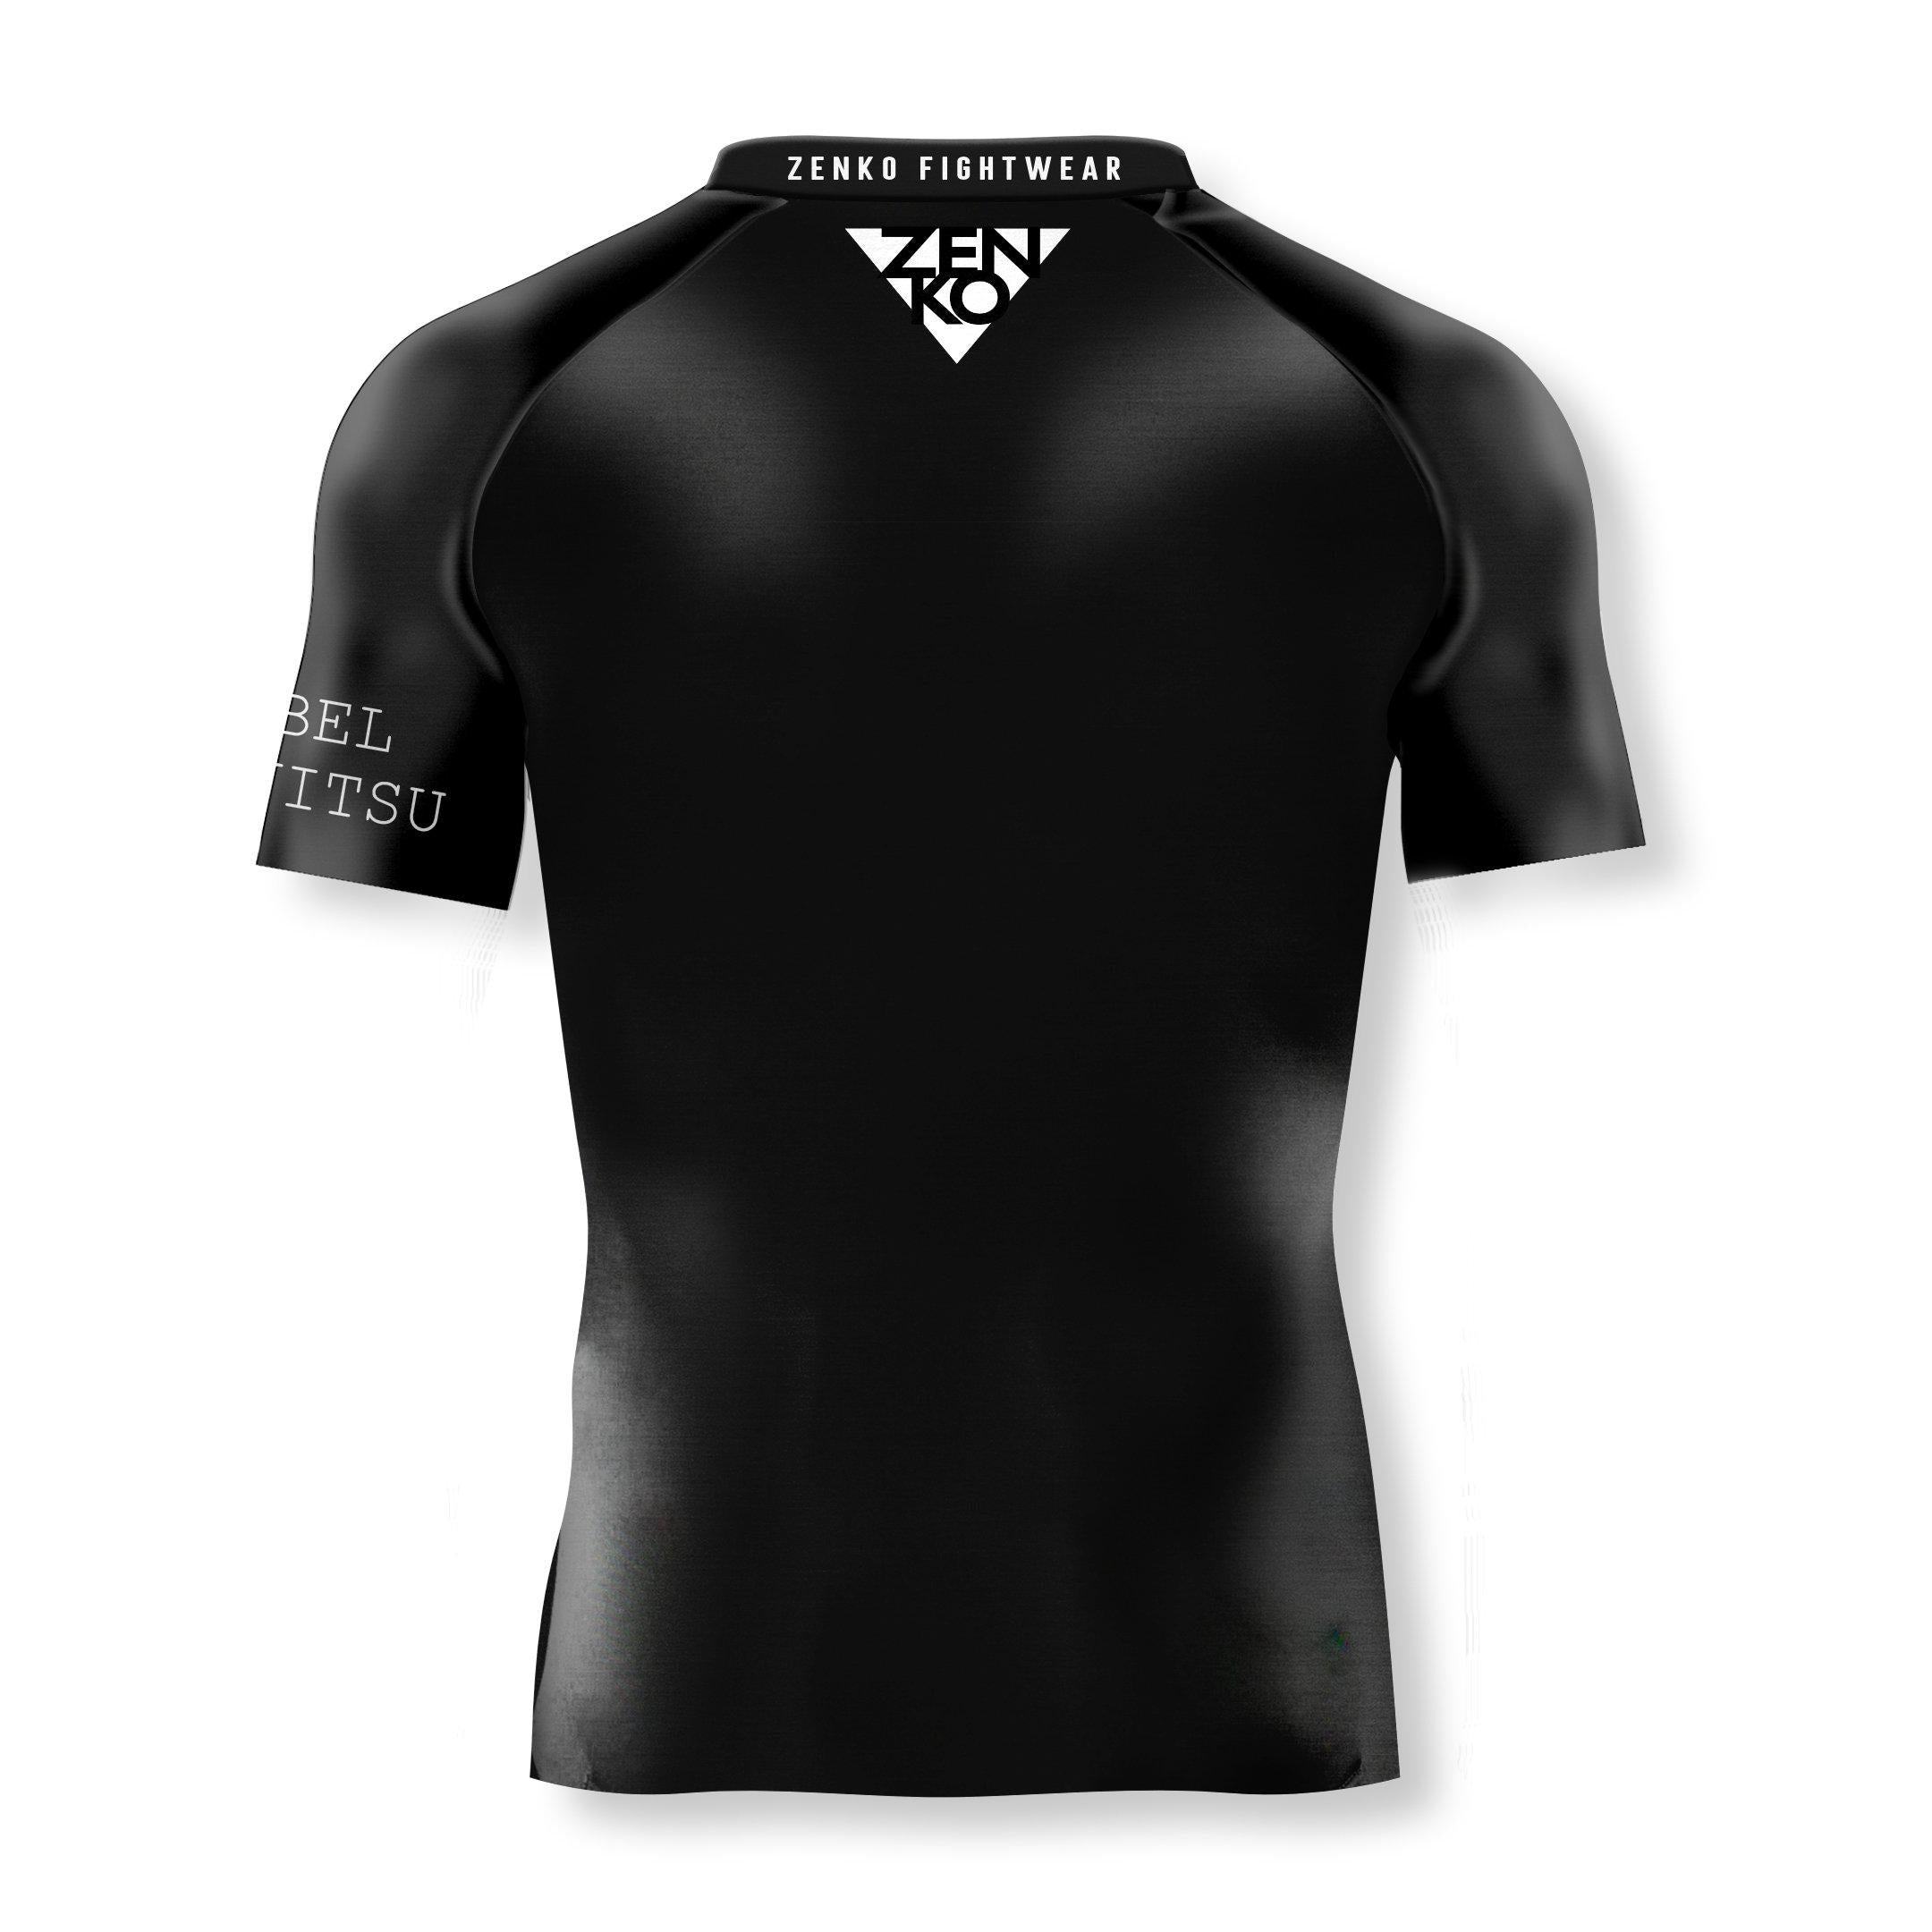 Rebel JiuJitsu Short Sleeve Rashguard V2 - Zenko Fightwear